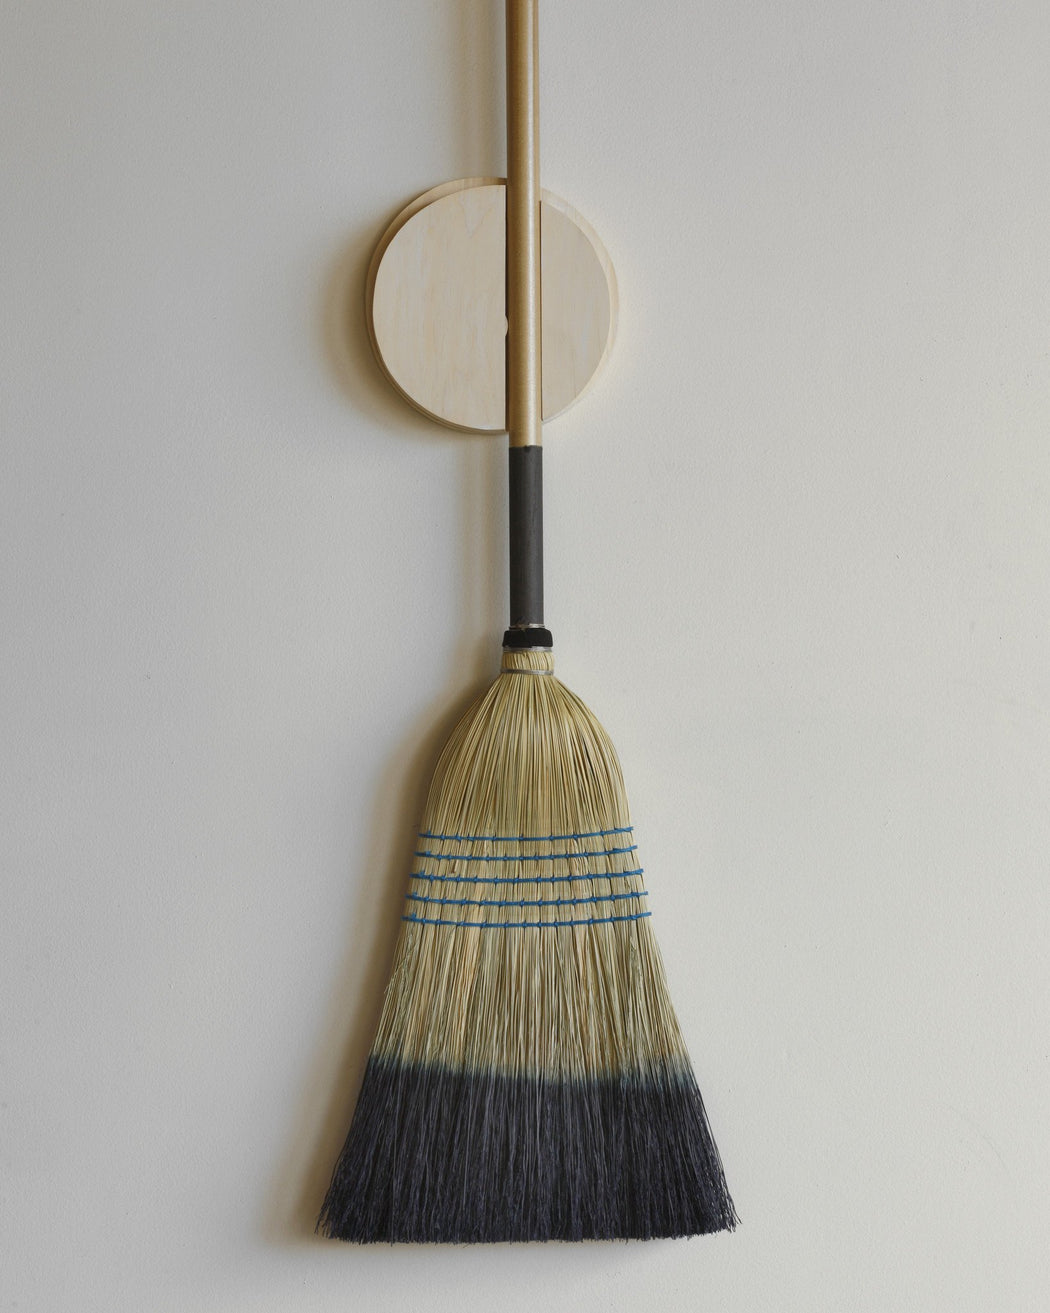 Lostine Broom holder with broom